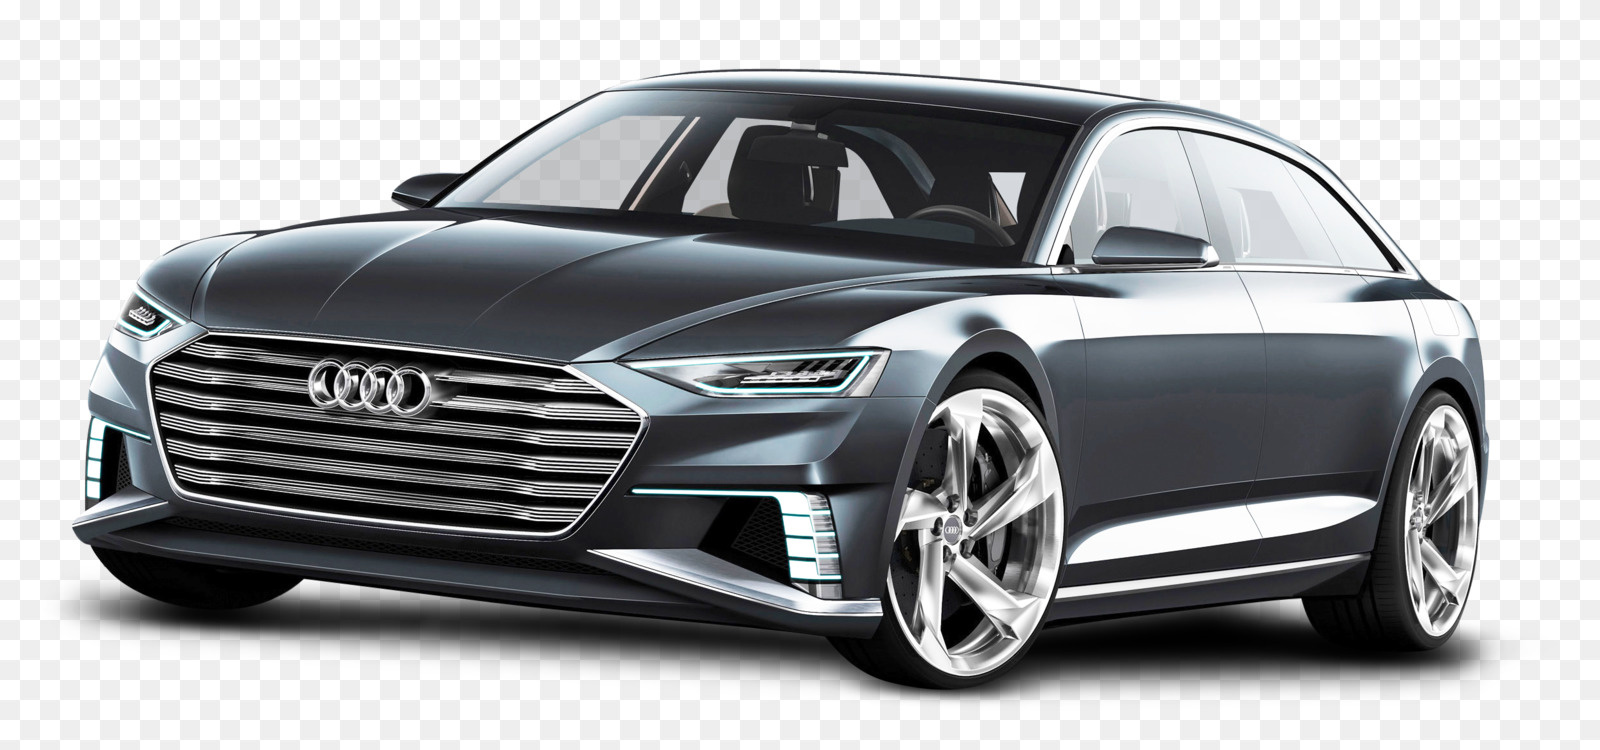 Family Car,Luxury Vehicle,Technology Transparent PNG.